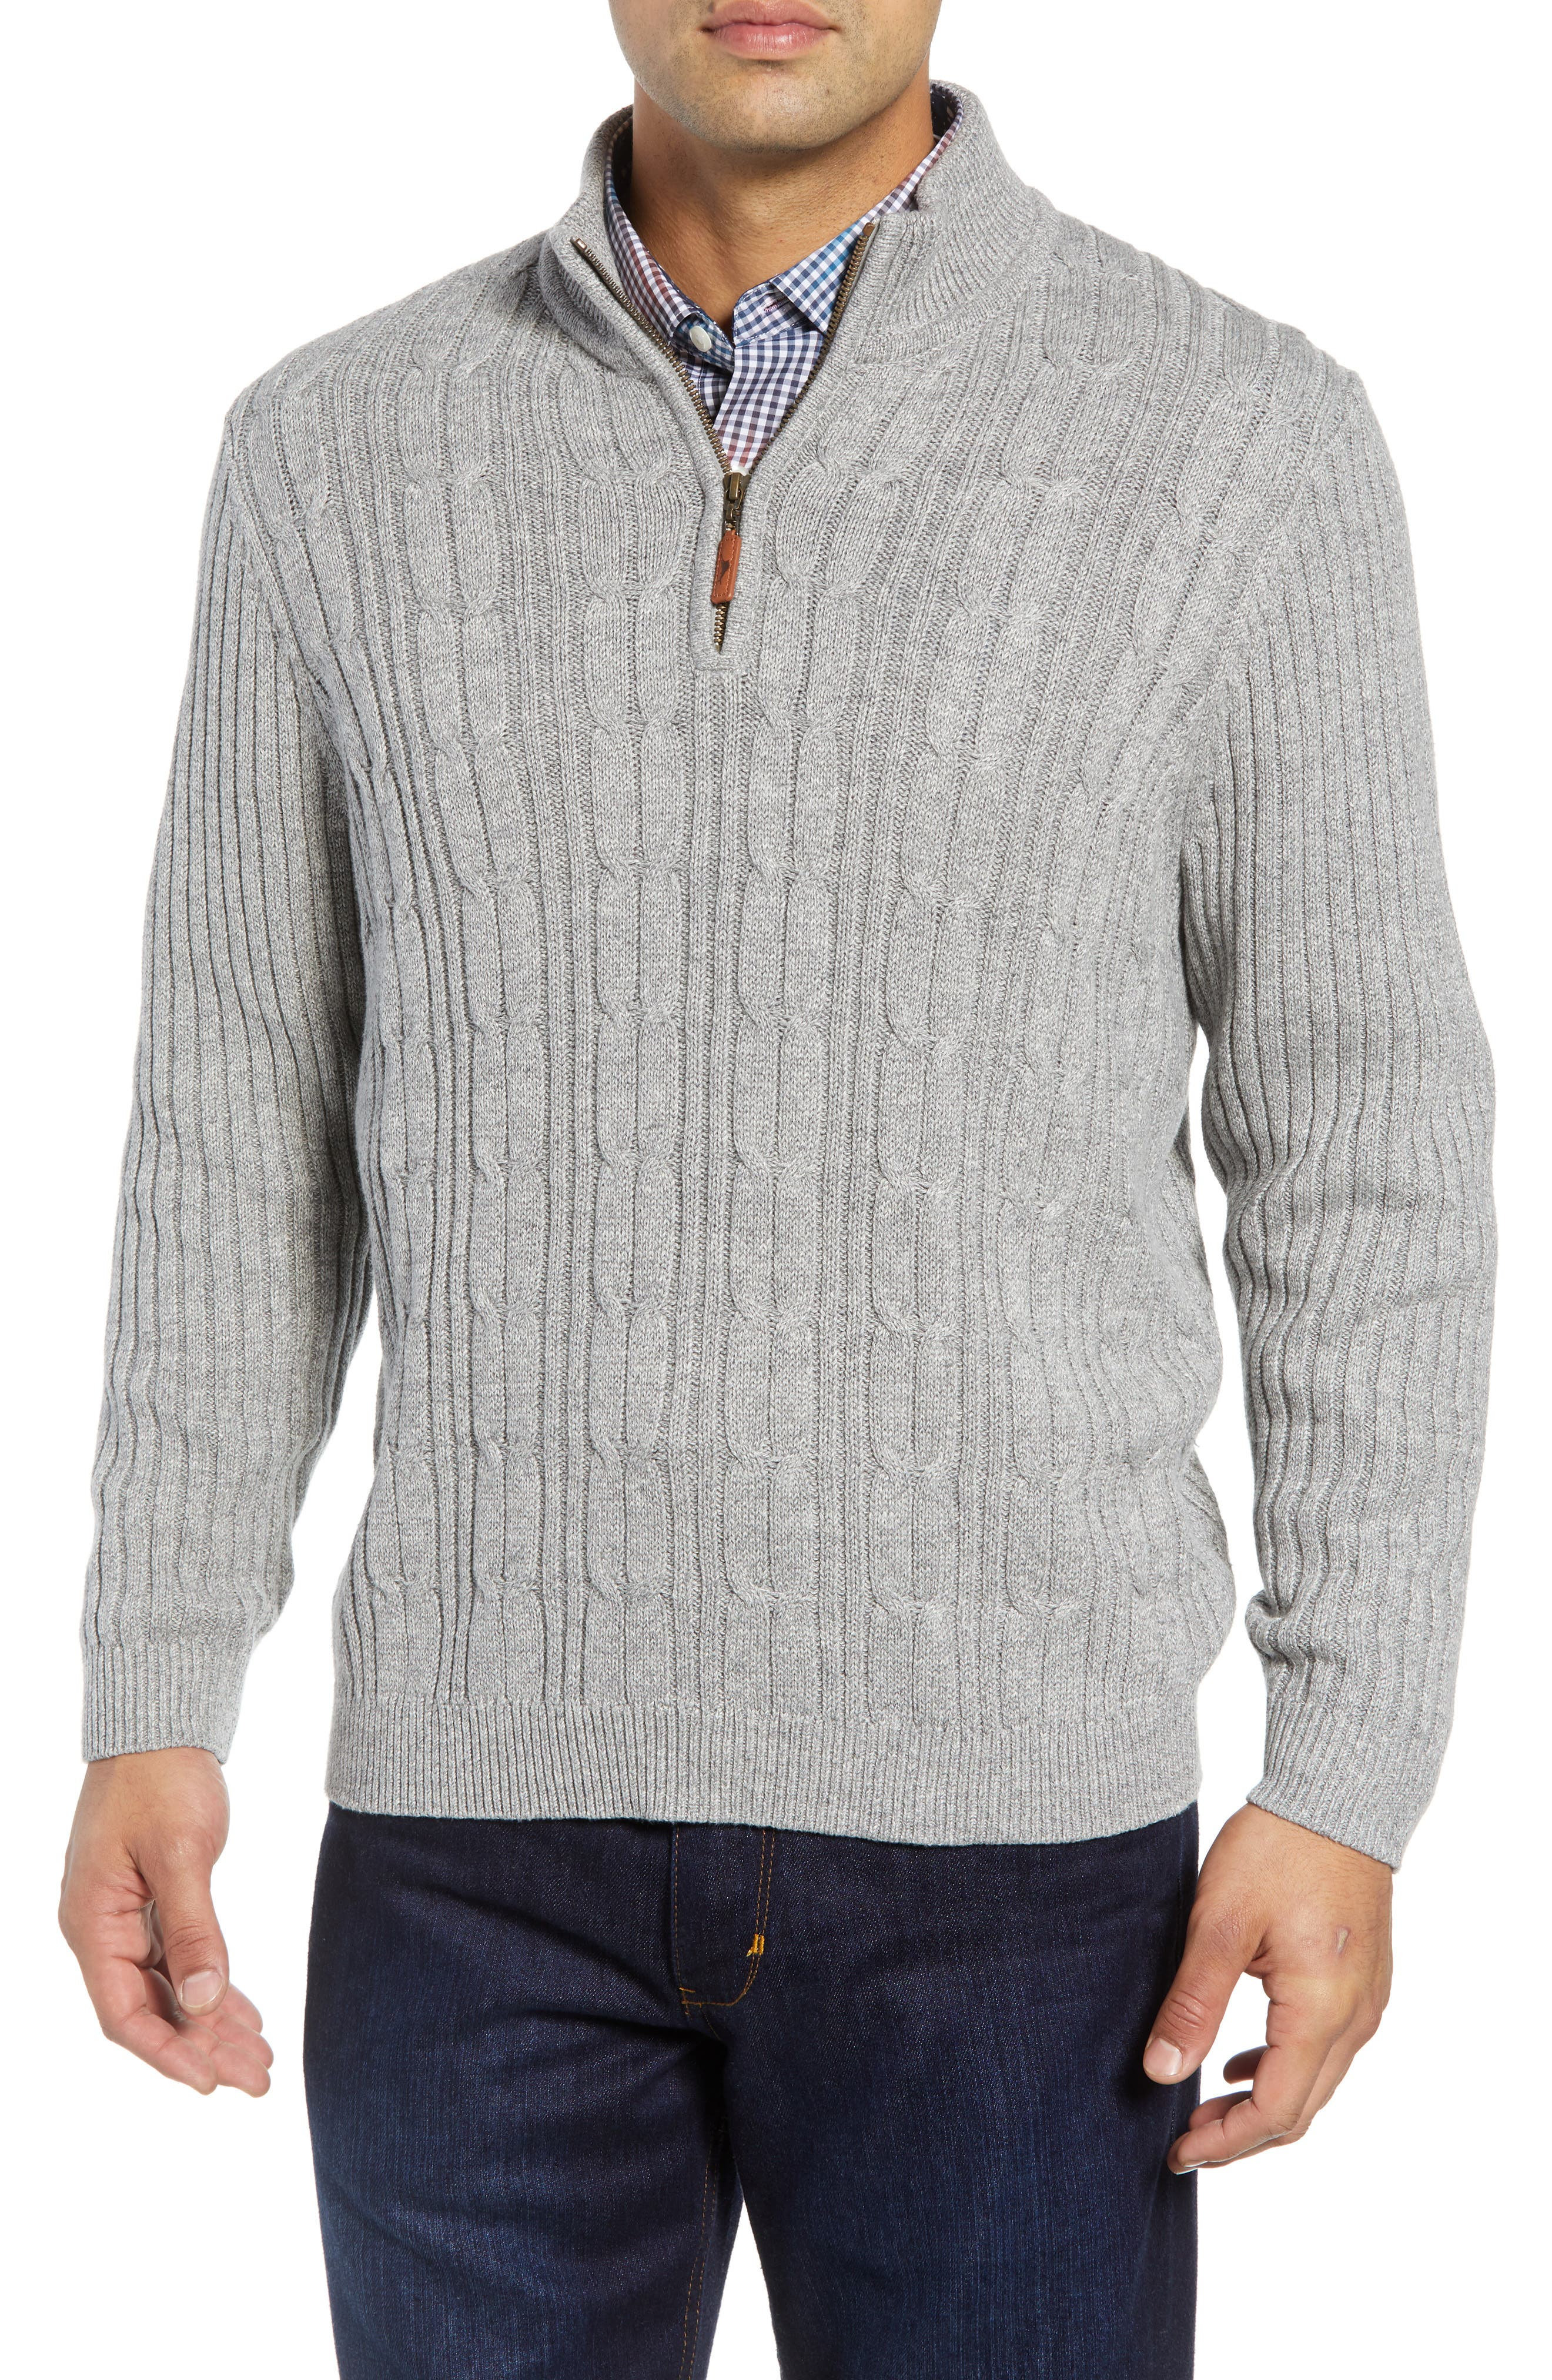 Tenorio Cable Knit Zip Sweater,                             Main thumbnail 1, color,                             LIGHT STORM